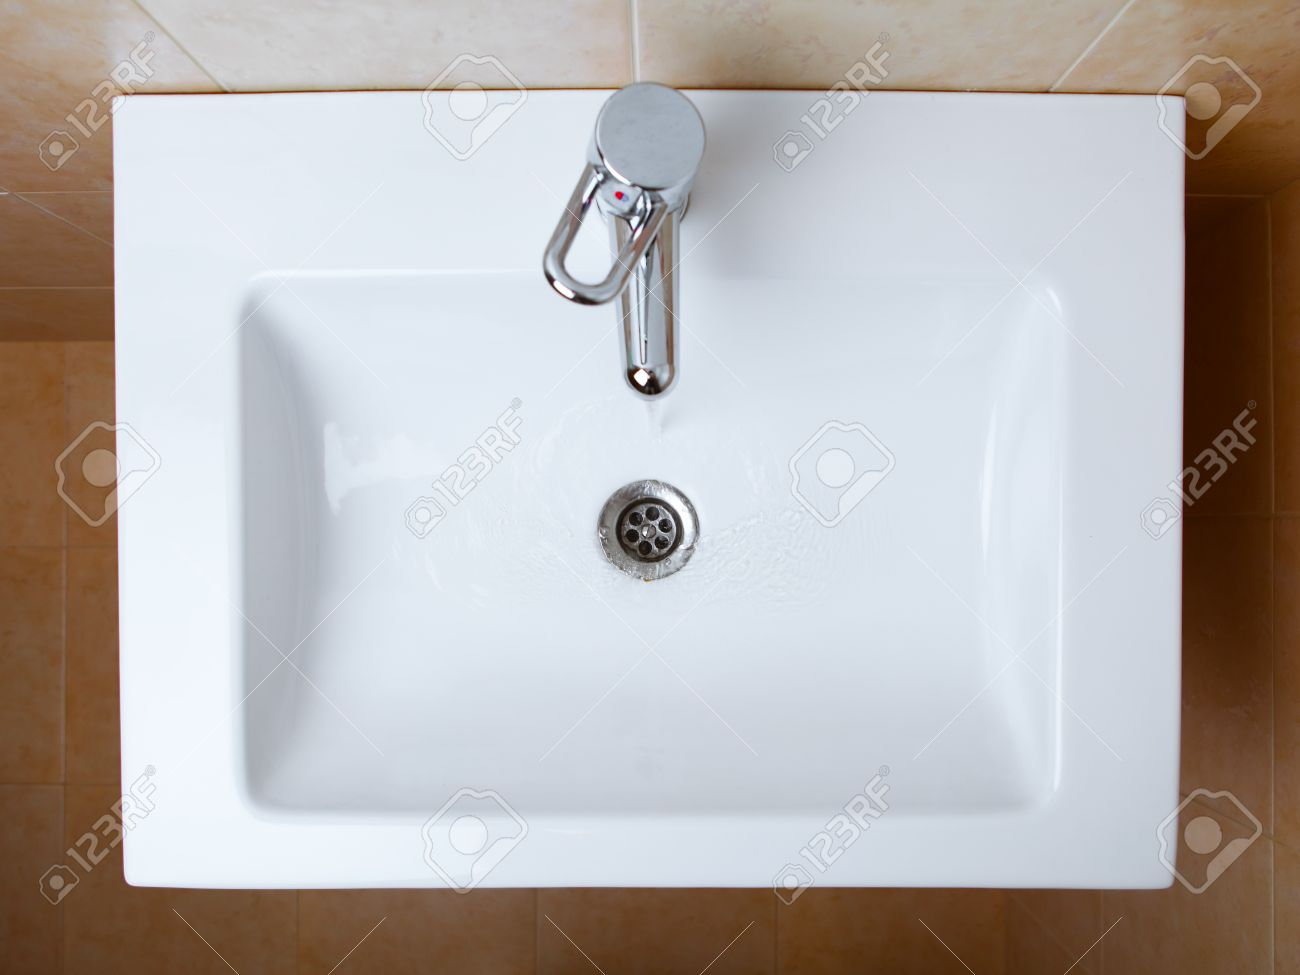 Wash Sink In A Bathroom Top View Stock Photo